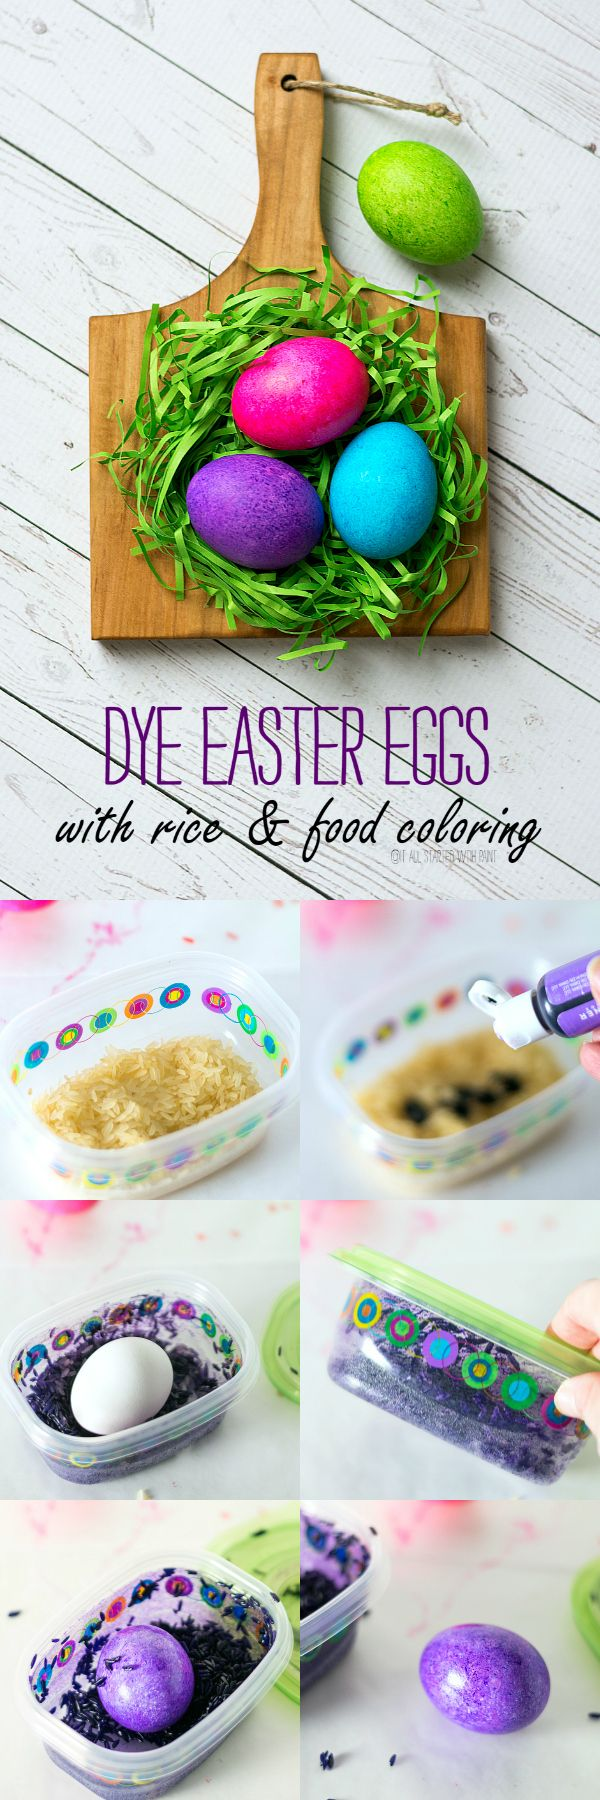 Dye Easter Eggs With Rice & Food Coloring | Easter crafts ...